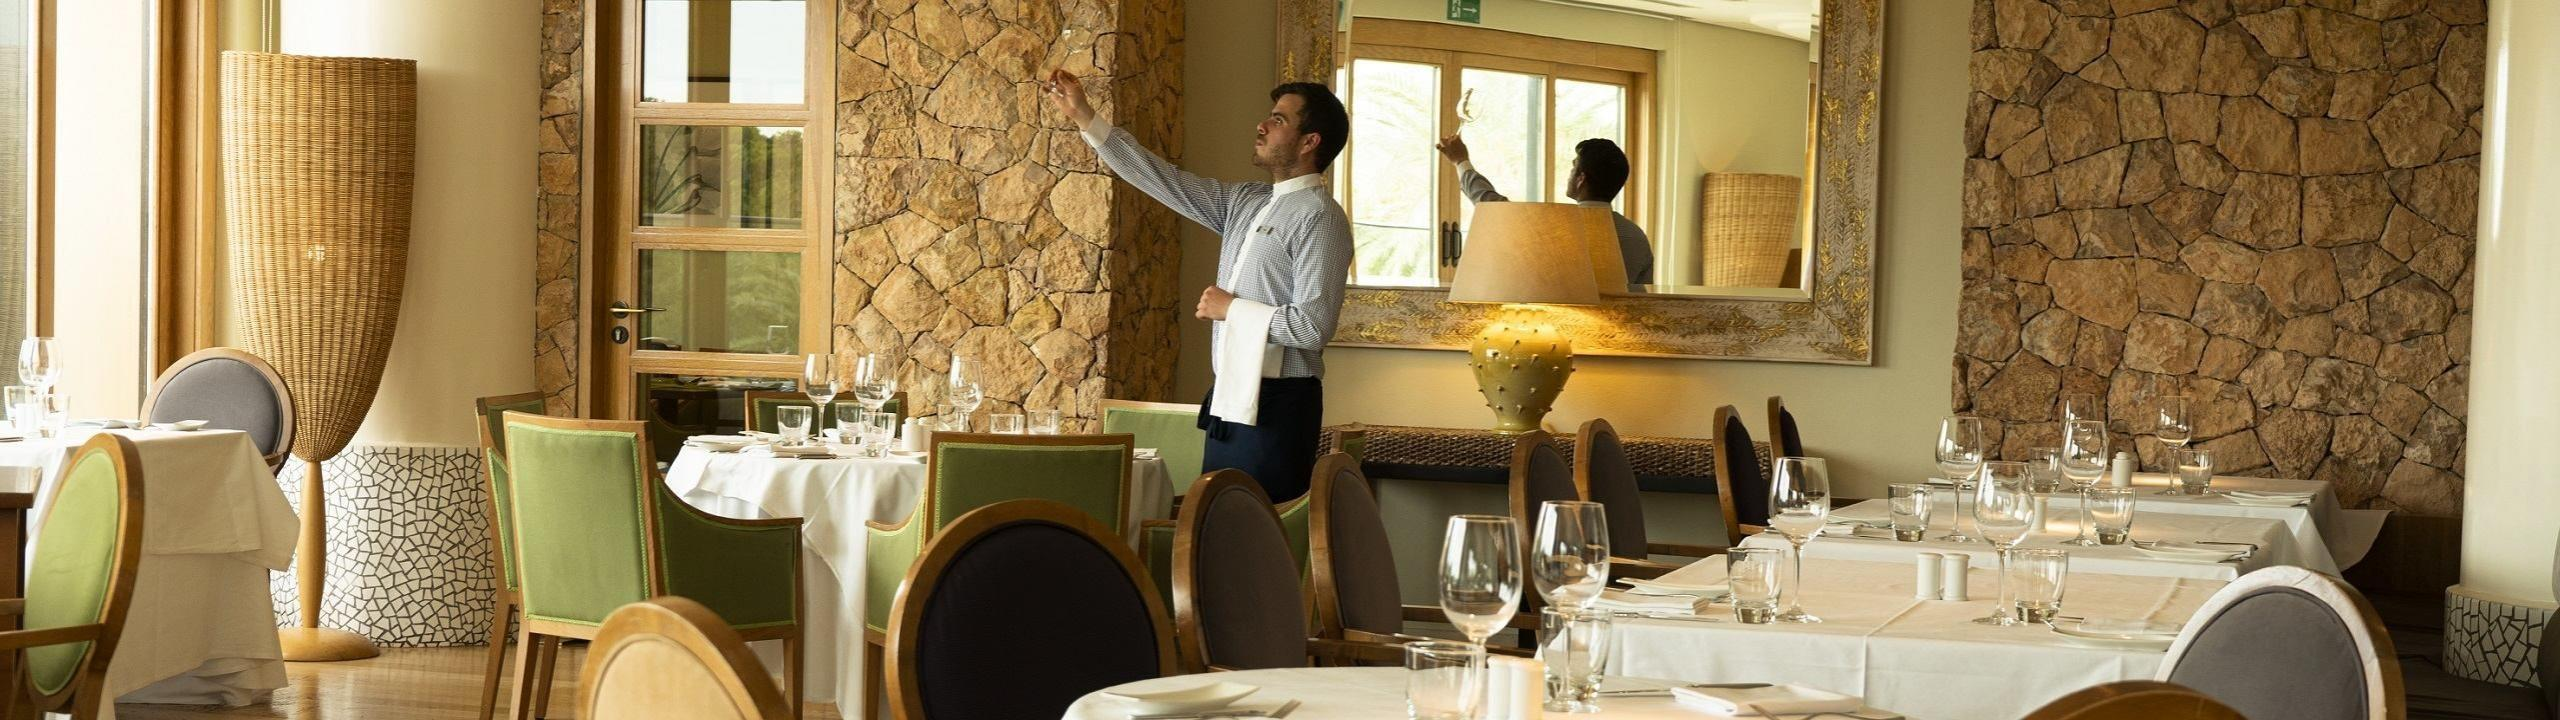 Your gastronomic getaway at La Manga Club